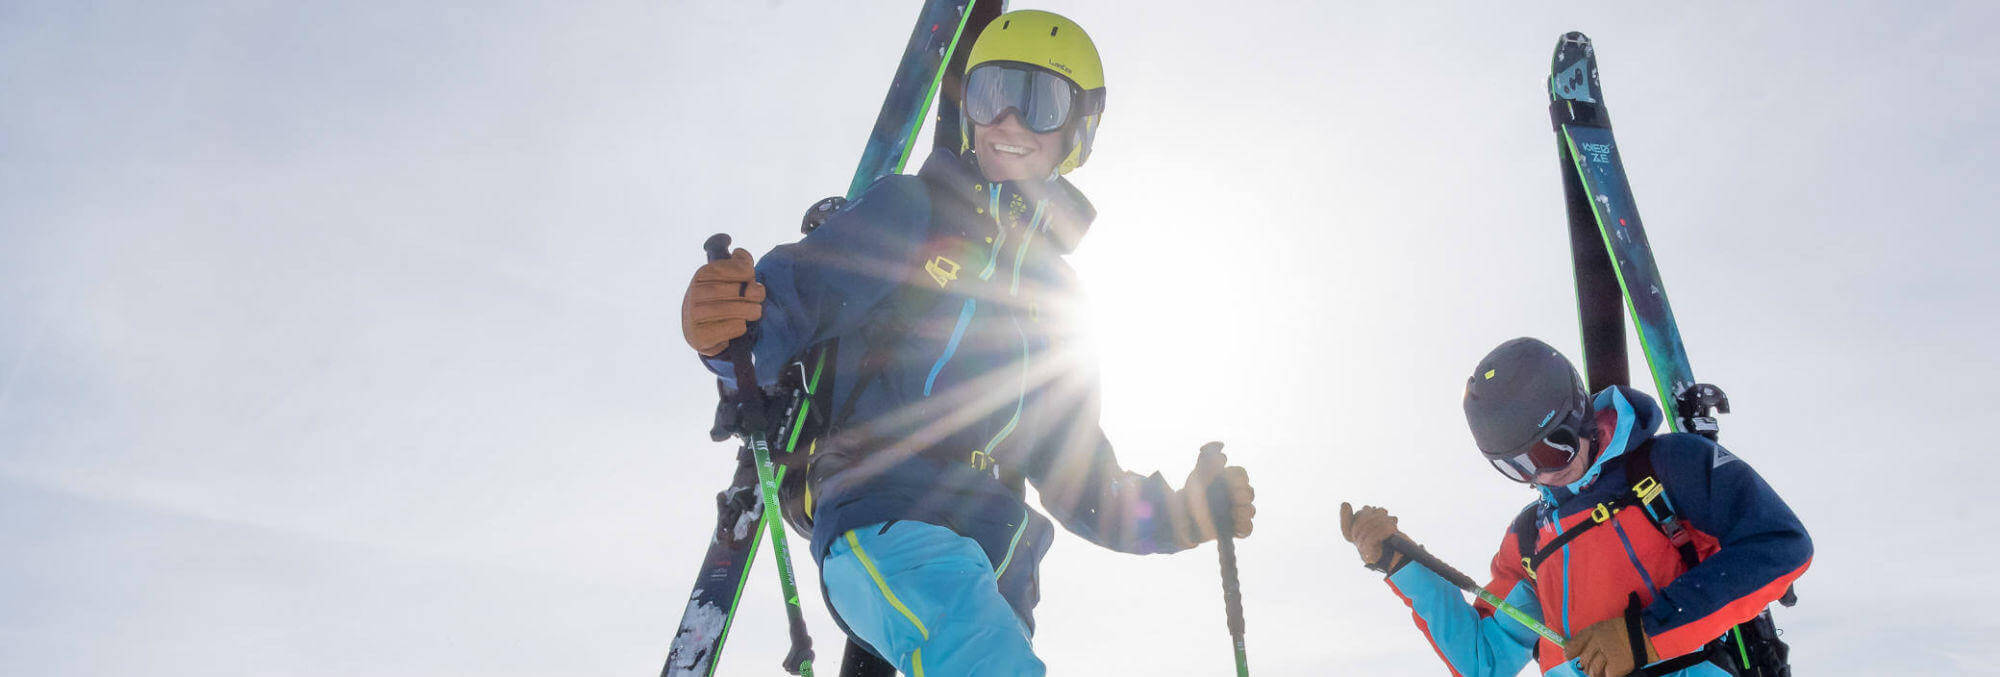 Ski Maintenance: How To Take Care Of Your Skis